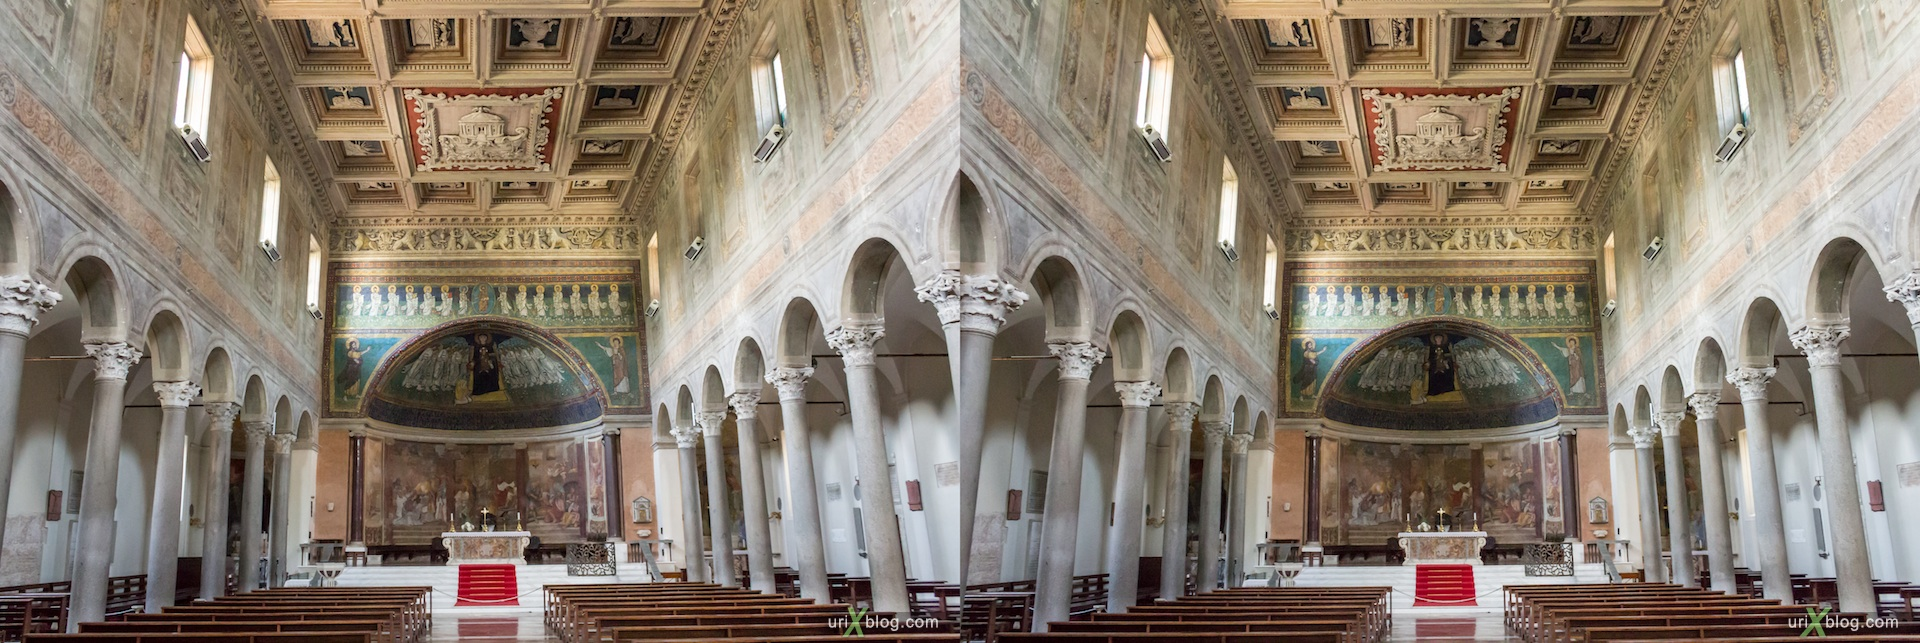 2012, church of Santa Maria in Domnica alla Navicella, Rome, Italy, cathedral, monastery, Christianity, Catholicism, 3D, stereo pair, cross-eyed, crossview, cross view stereo pair